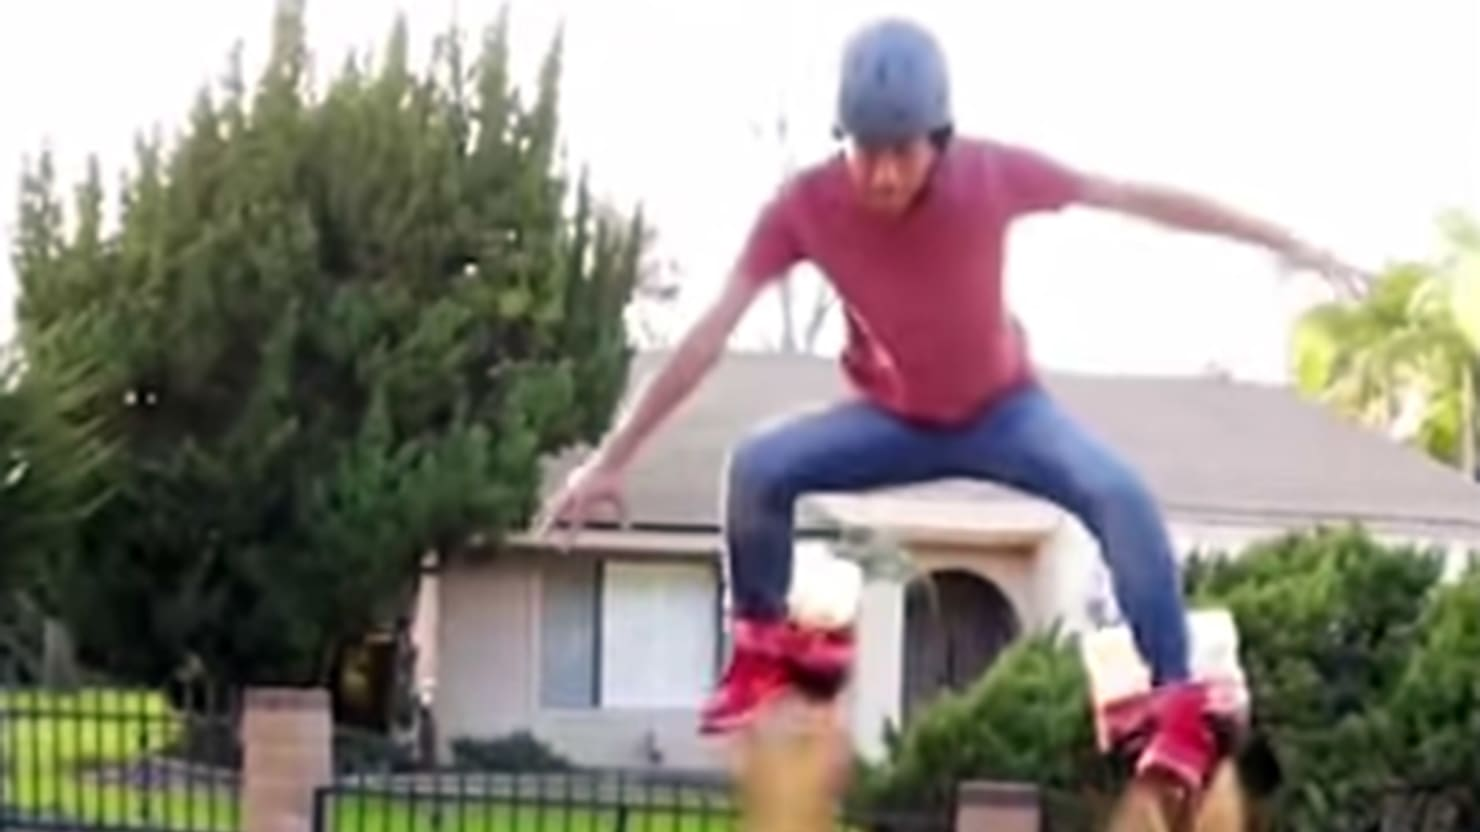 Meet Zach King, the Illusionist Behind the Greatest Vine Mash-Up You've Ever Seen